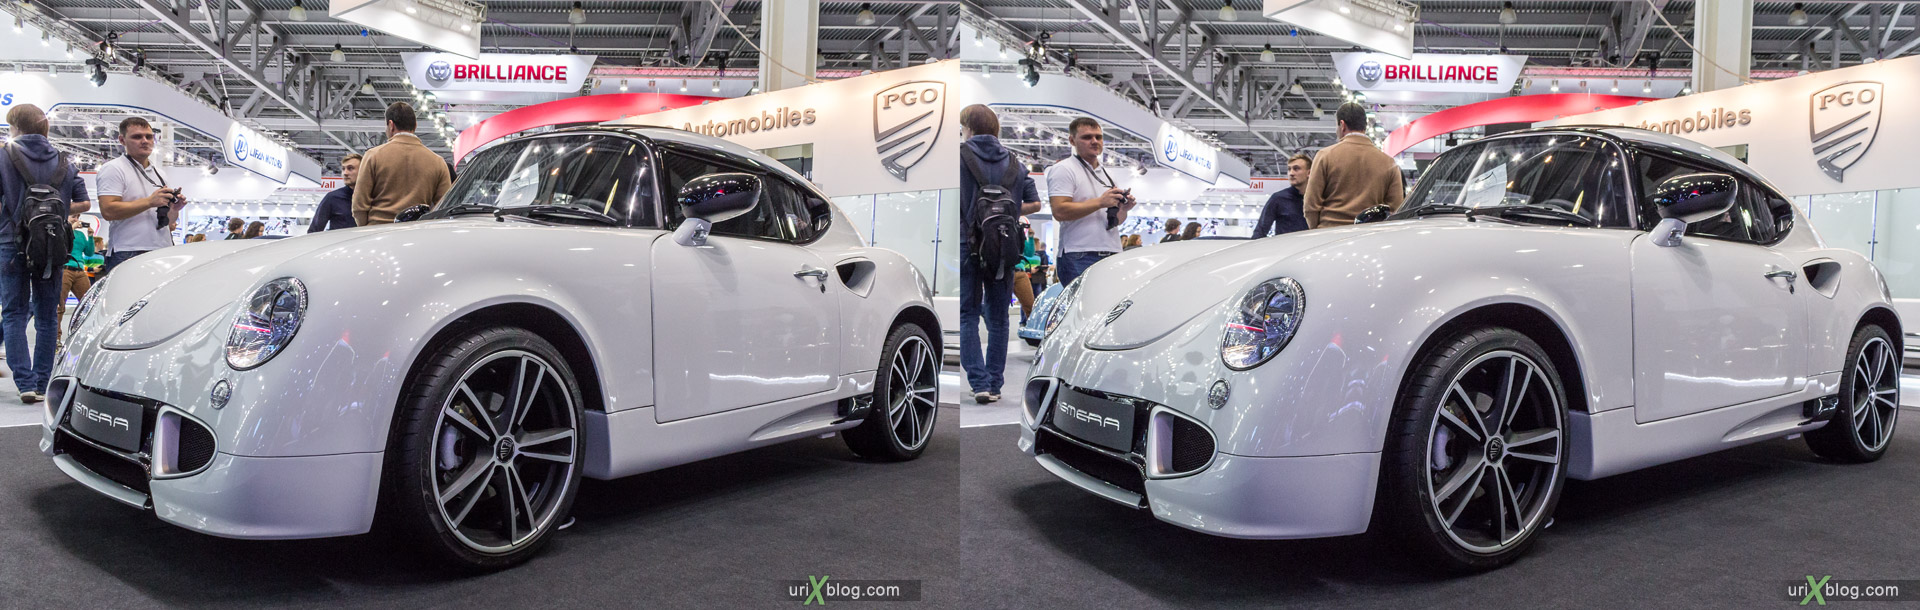 2014, PGO Hemera, Moscow International Automobile Salon, MIAS, Crocus Expo, Moscow, Russia, augest, 3D, stereo pair, cross-eyed, crossview, cross view stereo pair, stereoscopic